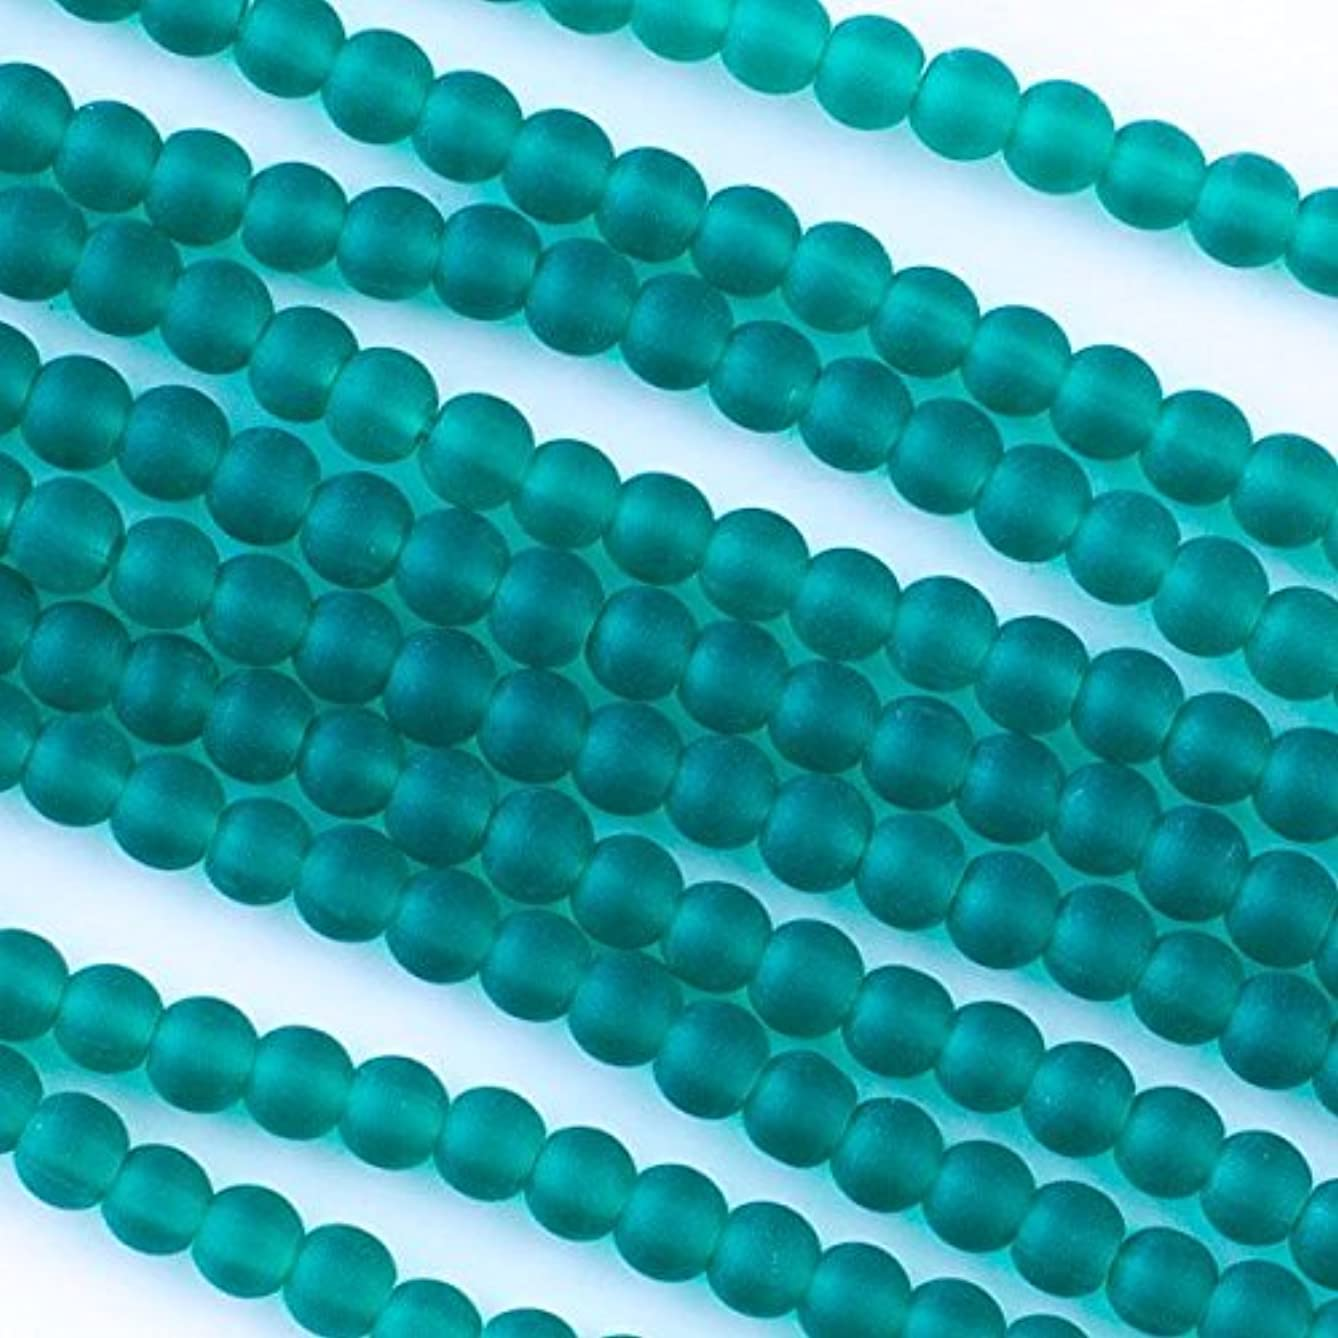 Cherry Blossom Beads Cultured Sea Glass 4mm Peacock Green Round Beads - 16 inch strand